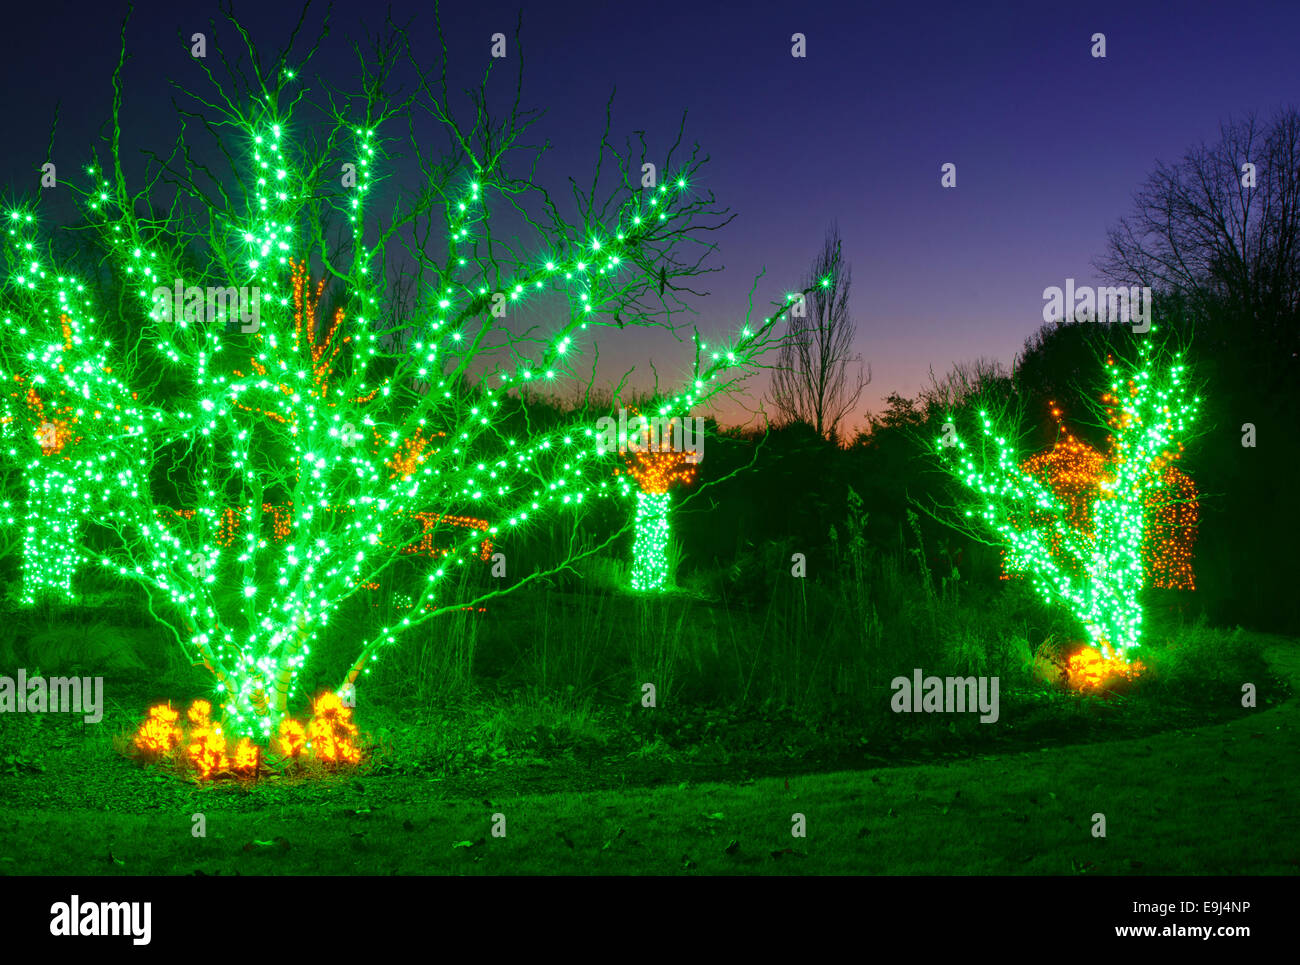 outdoor christmas trees have been decorated with green lights and